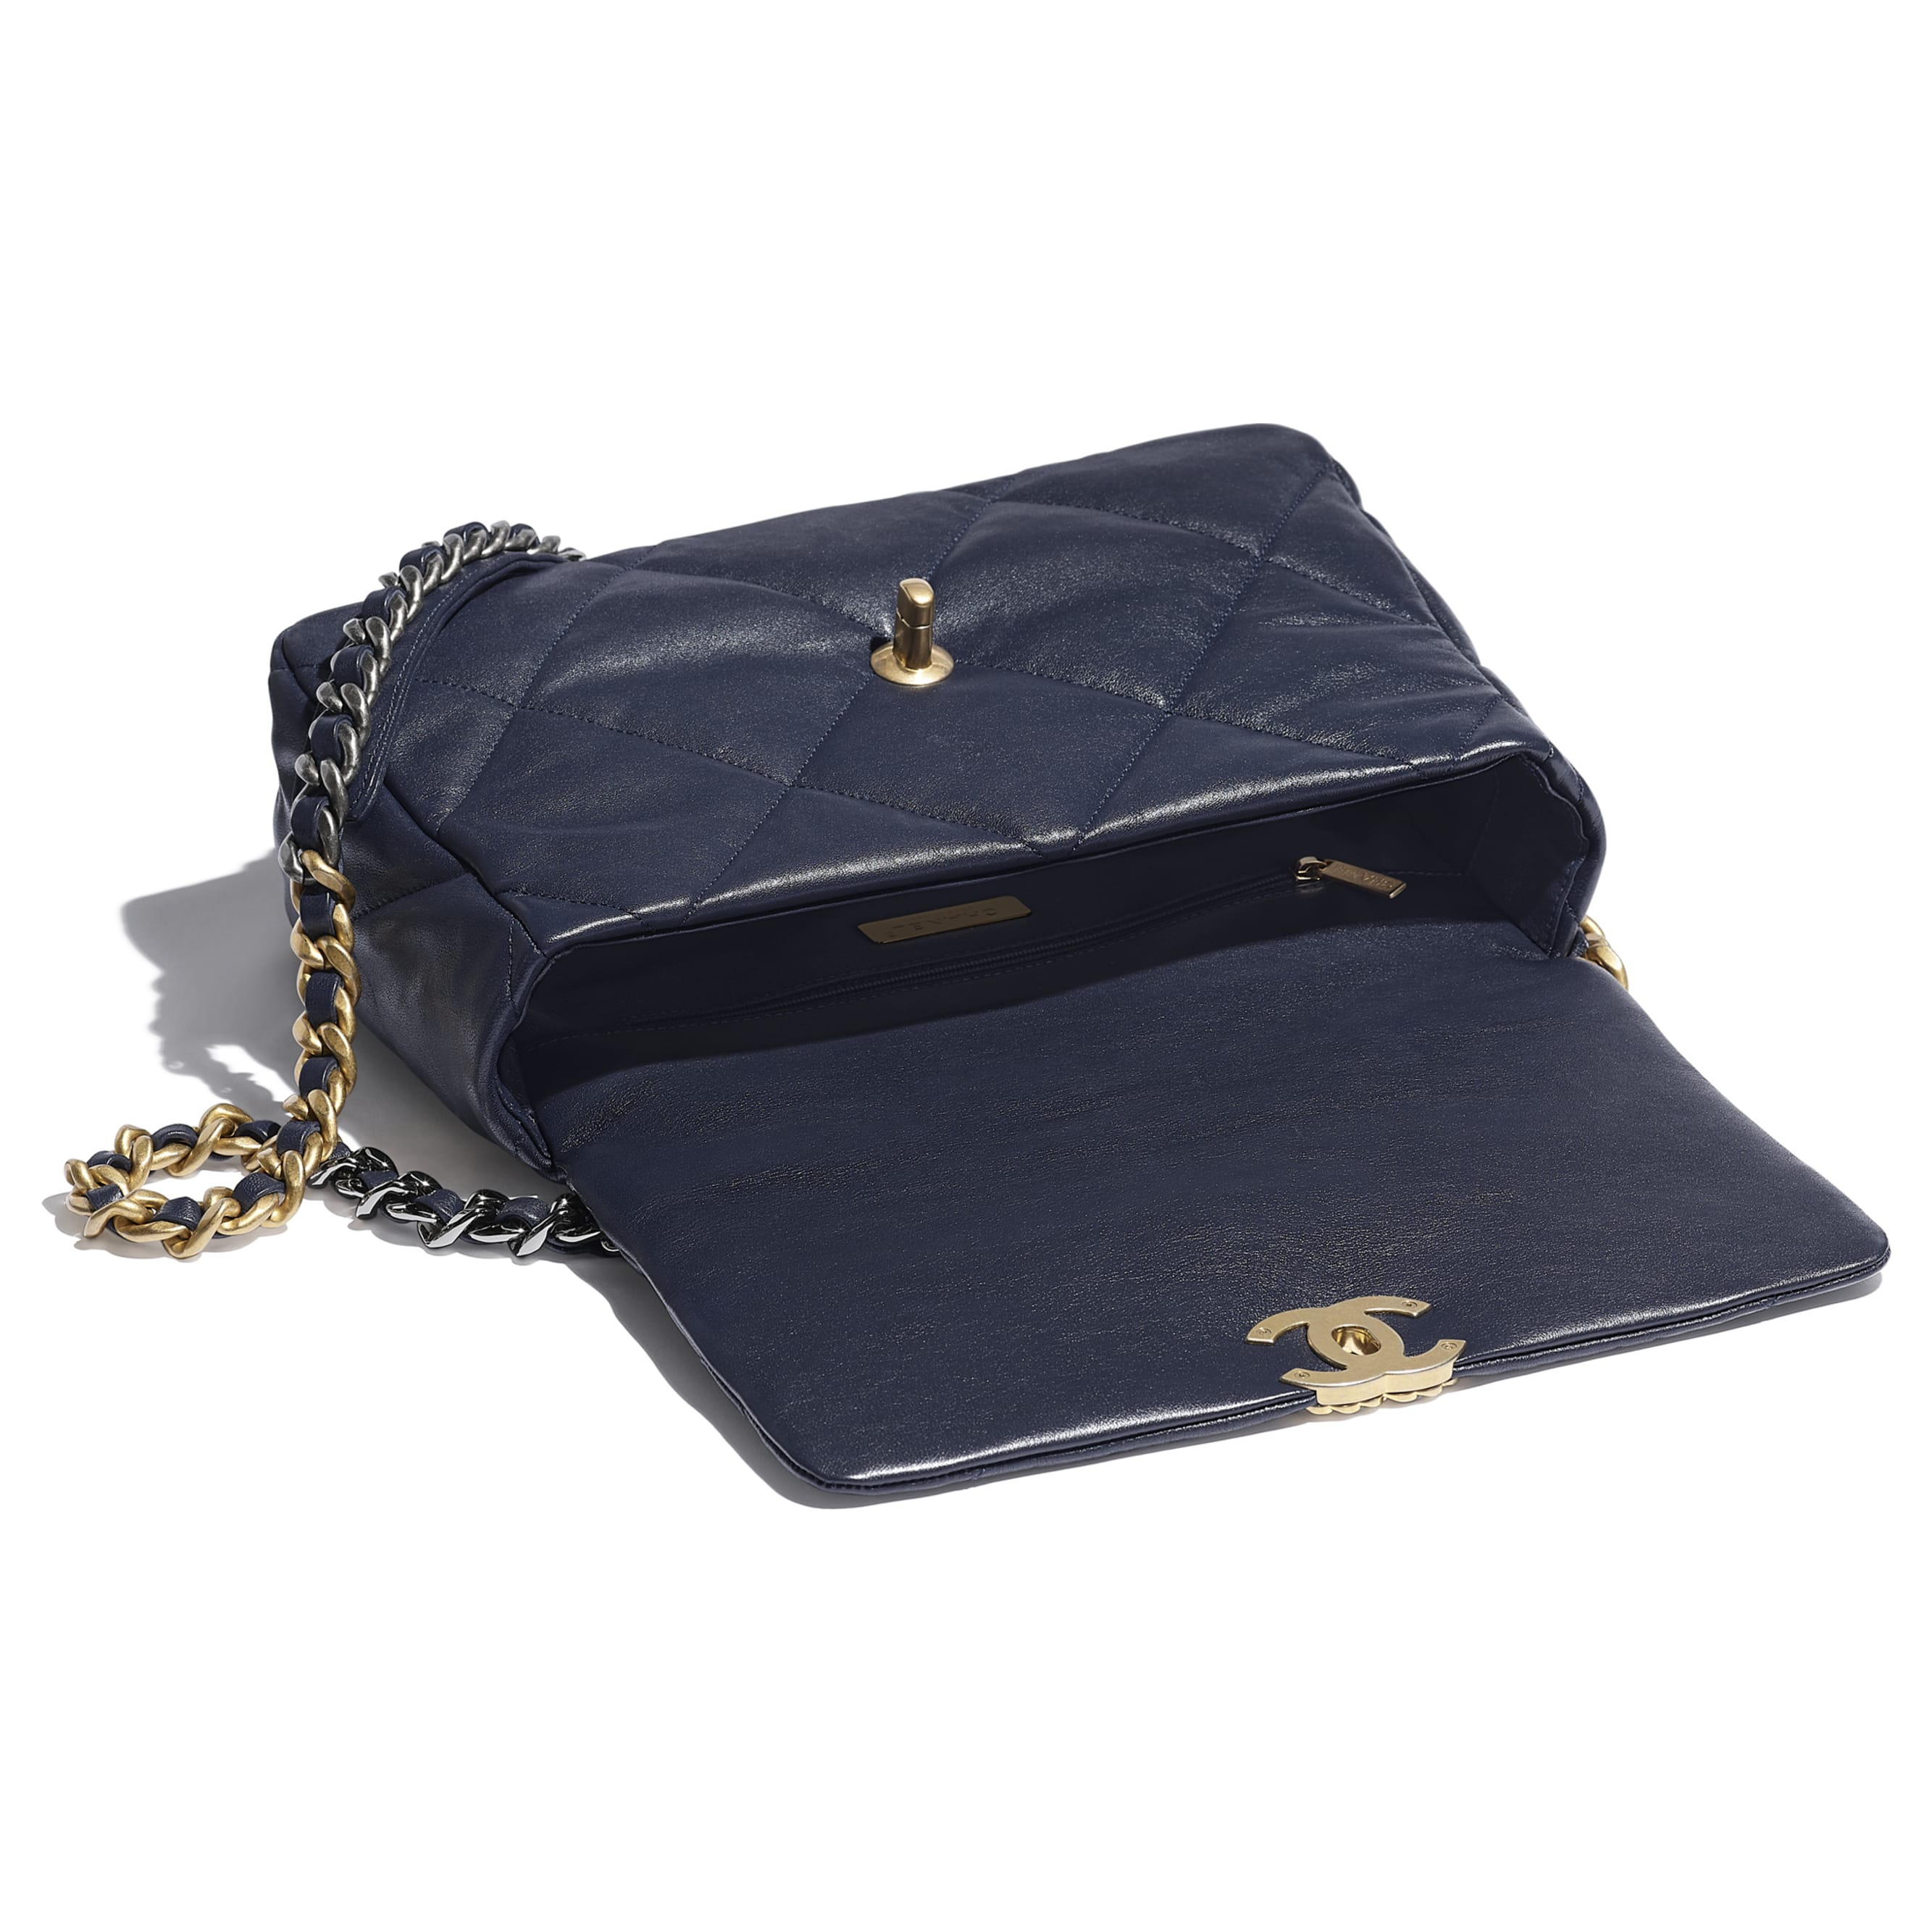 CHANEL 19 Large Flap Bag - Navy Blue - Lambskin, Gold-Tone, Silver-Tone & Ruthenium-Finish Metal - CHANEL - Other view - see standard sized version